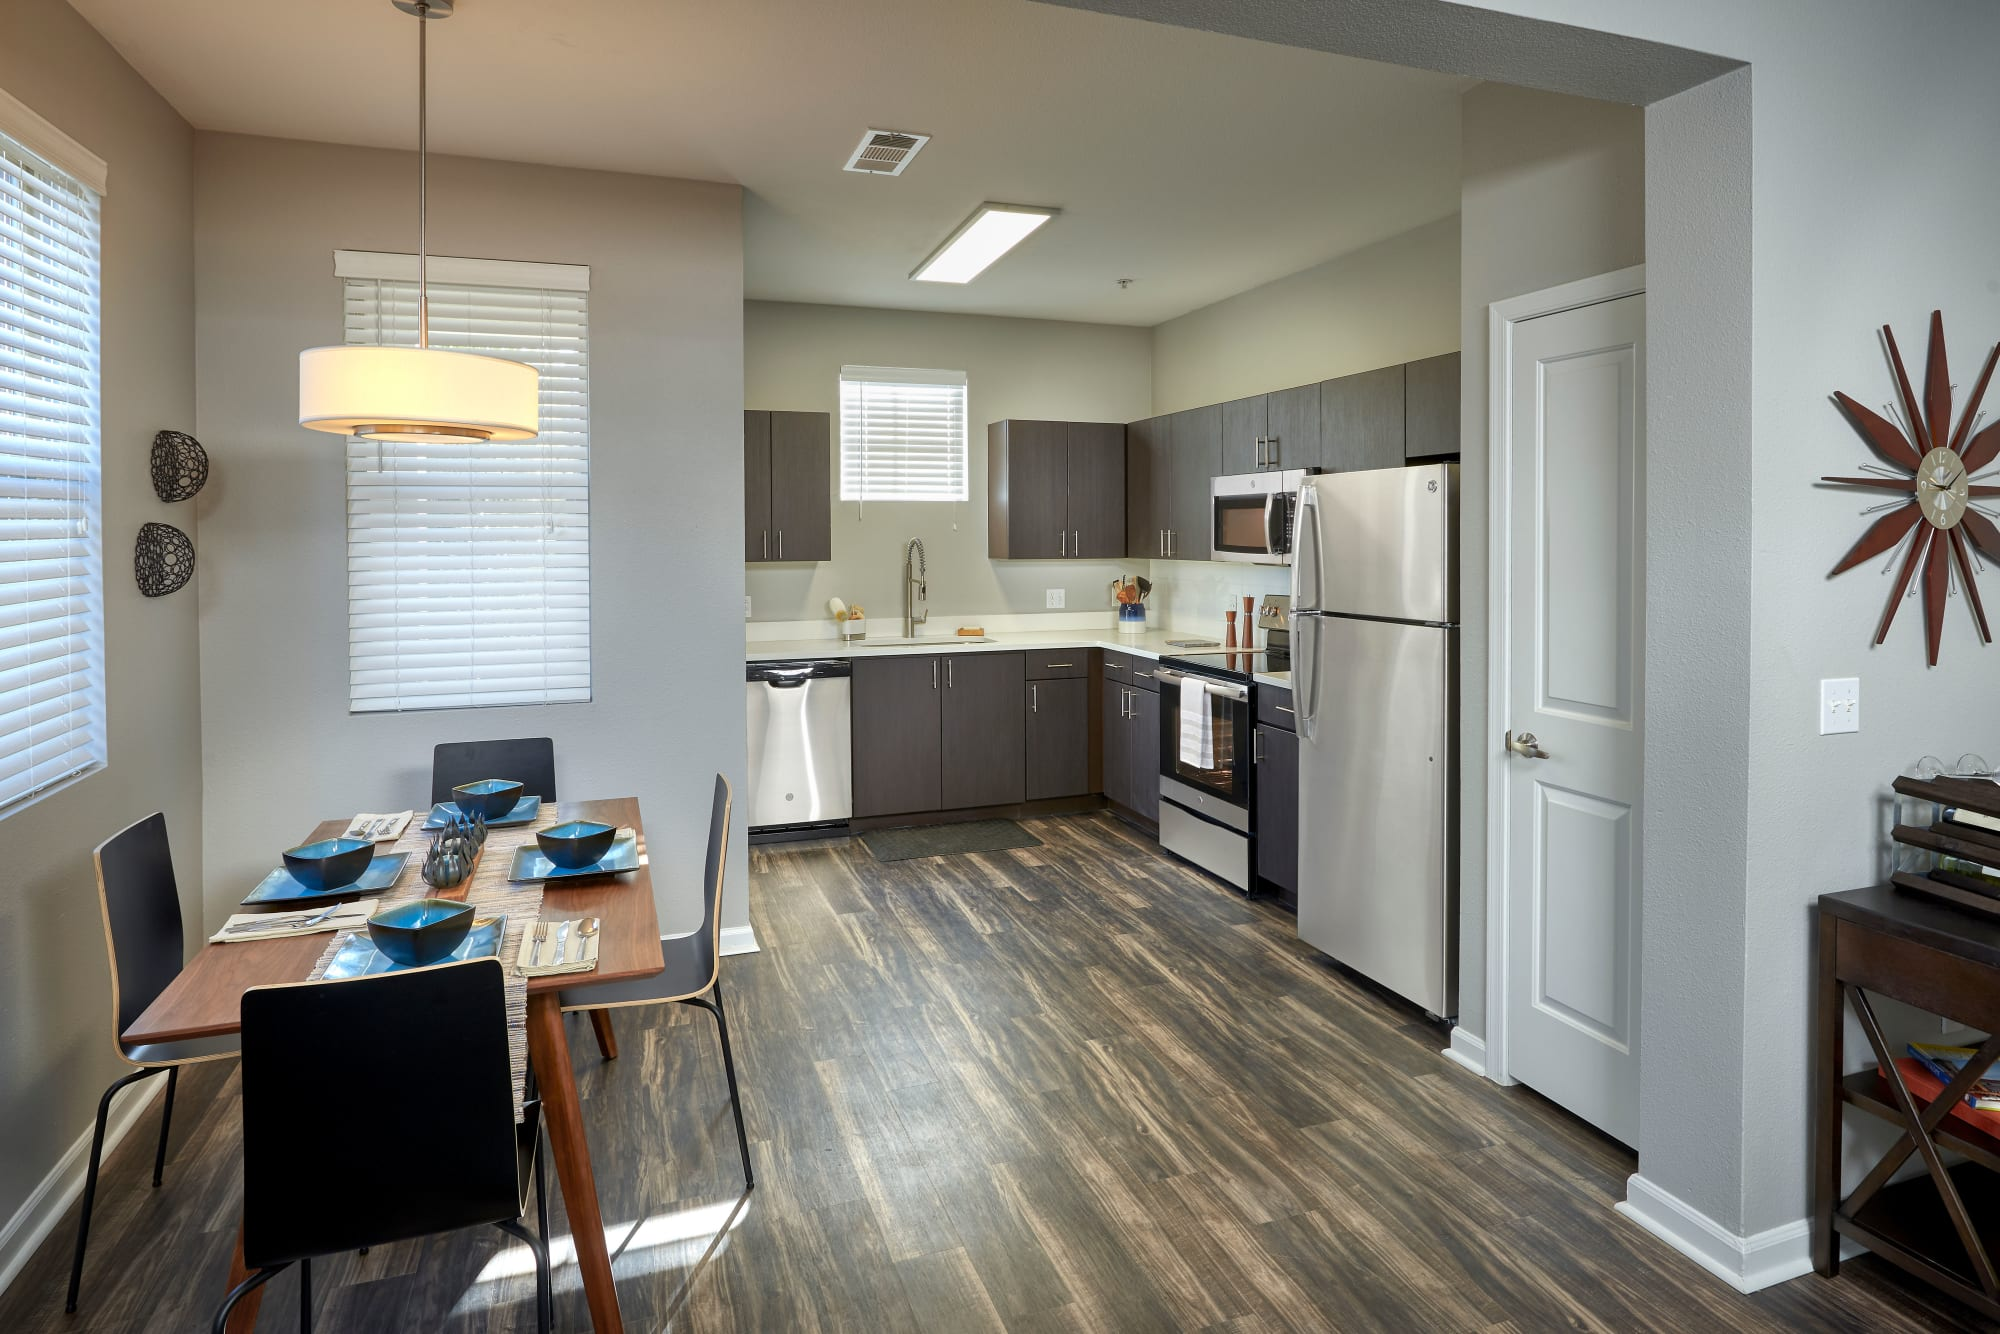 Cozy kitchen with brown renovation and stainless steel appliances at The Rail at Inverness in Englewood, Colorado